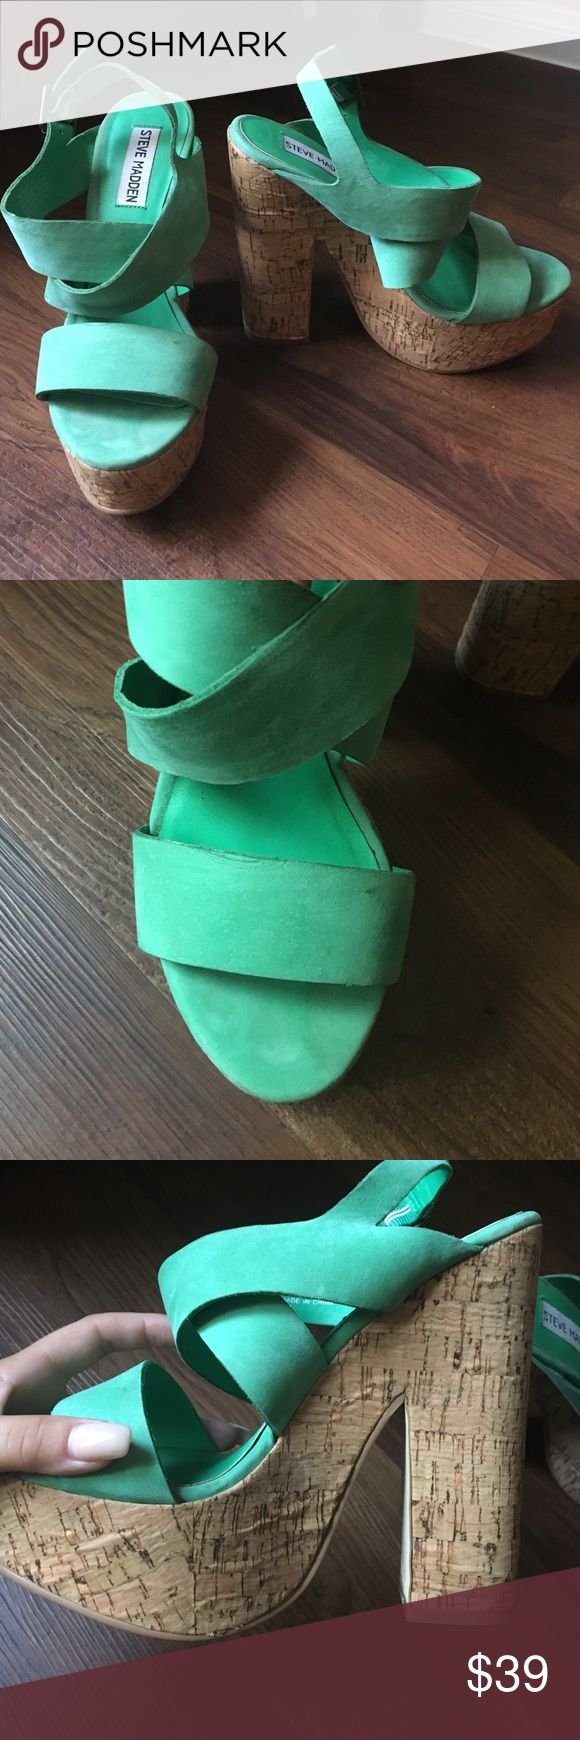 Steve Madden seafoam green wedges Shows some sign of wear. Chunky wooden heel makes for comfortable walking. Brightens up any outfit! Steve Madden Shoes Wedges